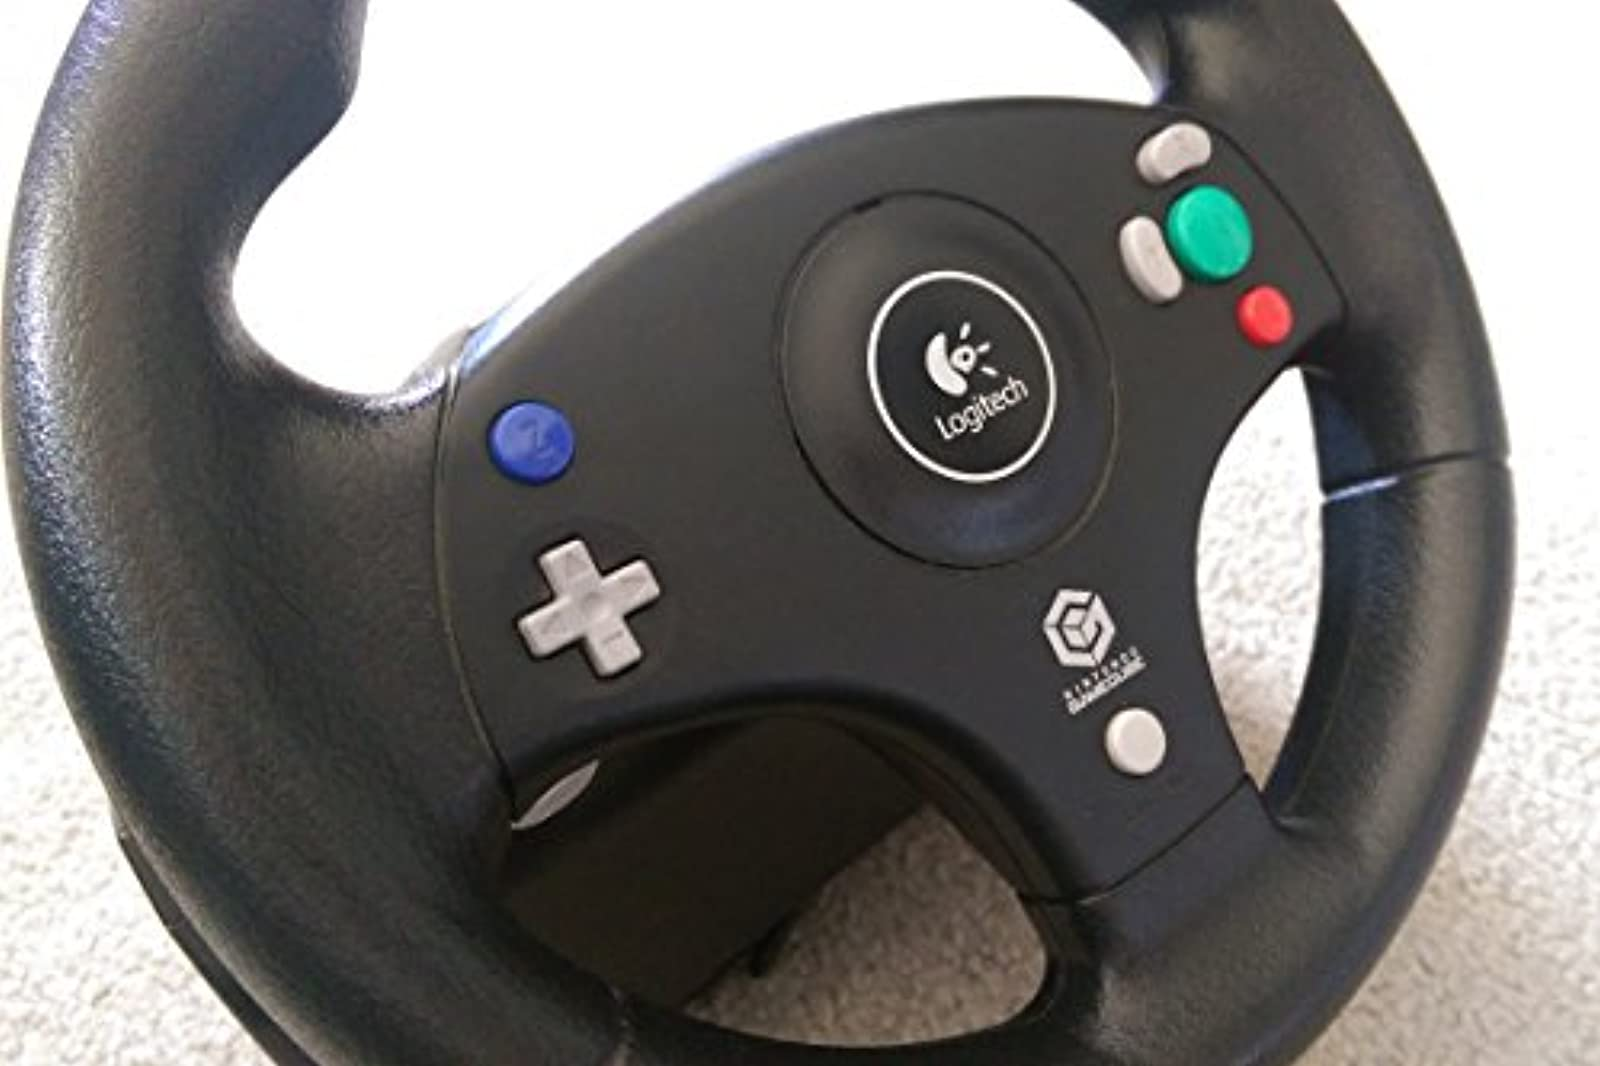 Logitech Speed Force Wheel For With Force Feedback For GameCube